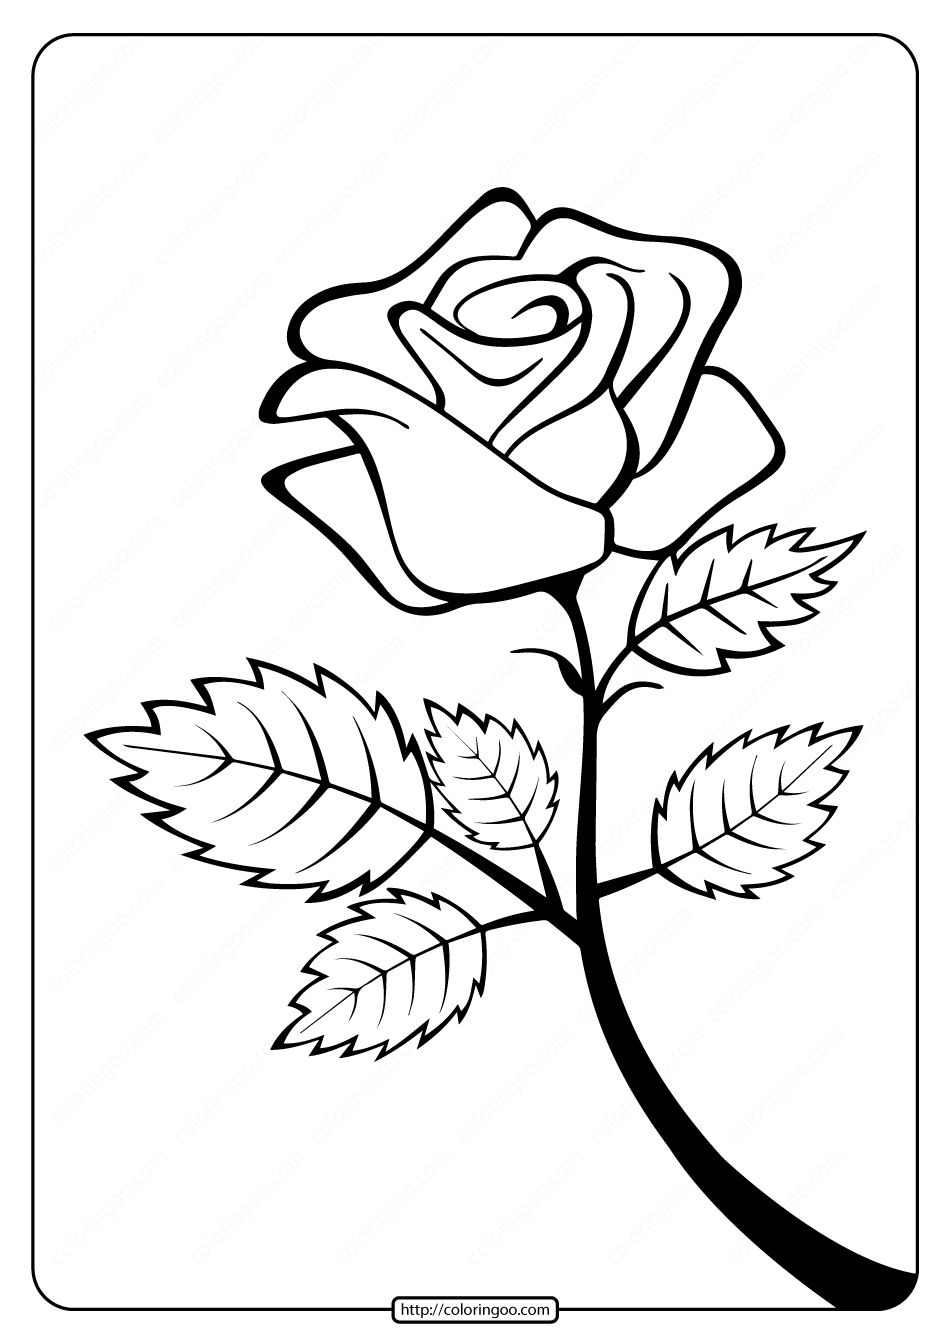 free coloring pages of roses printable rose coloring pages for kids coloring pages roses free of